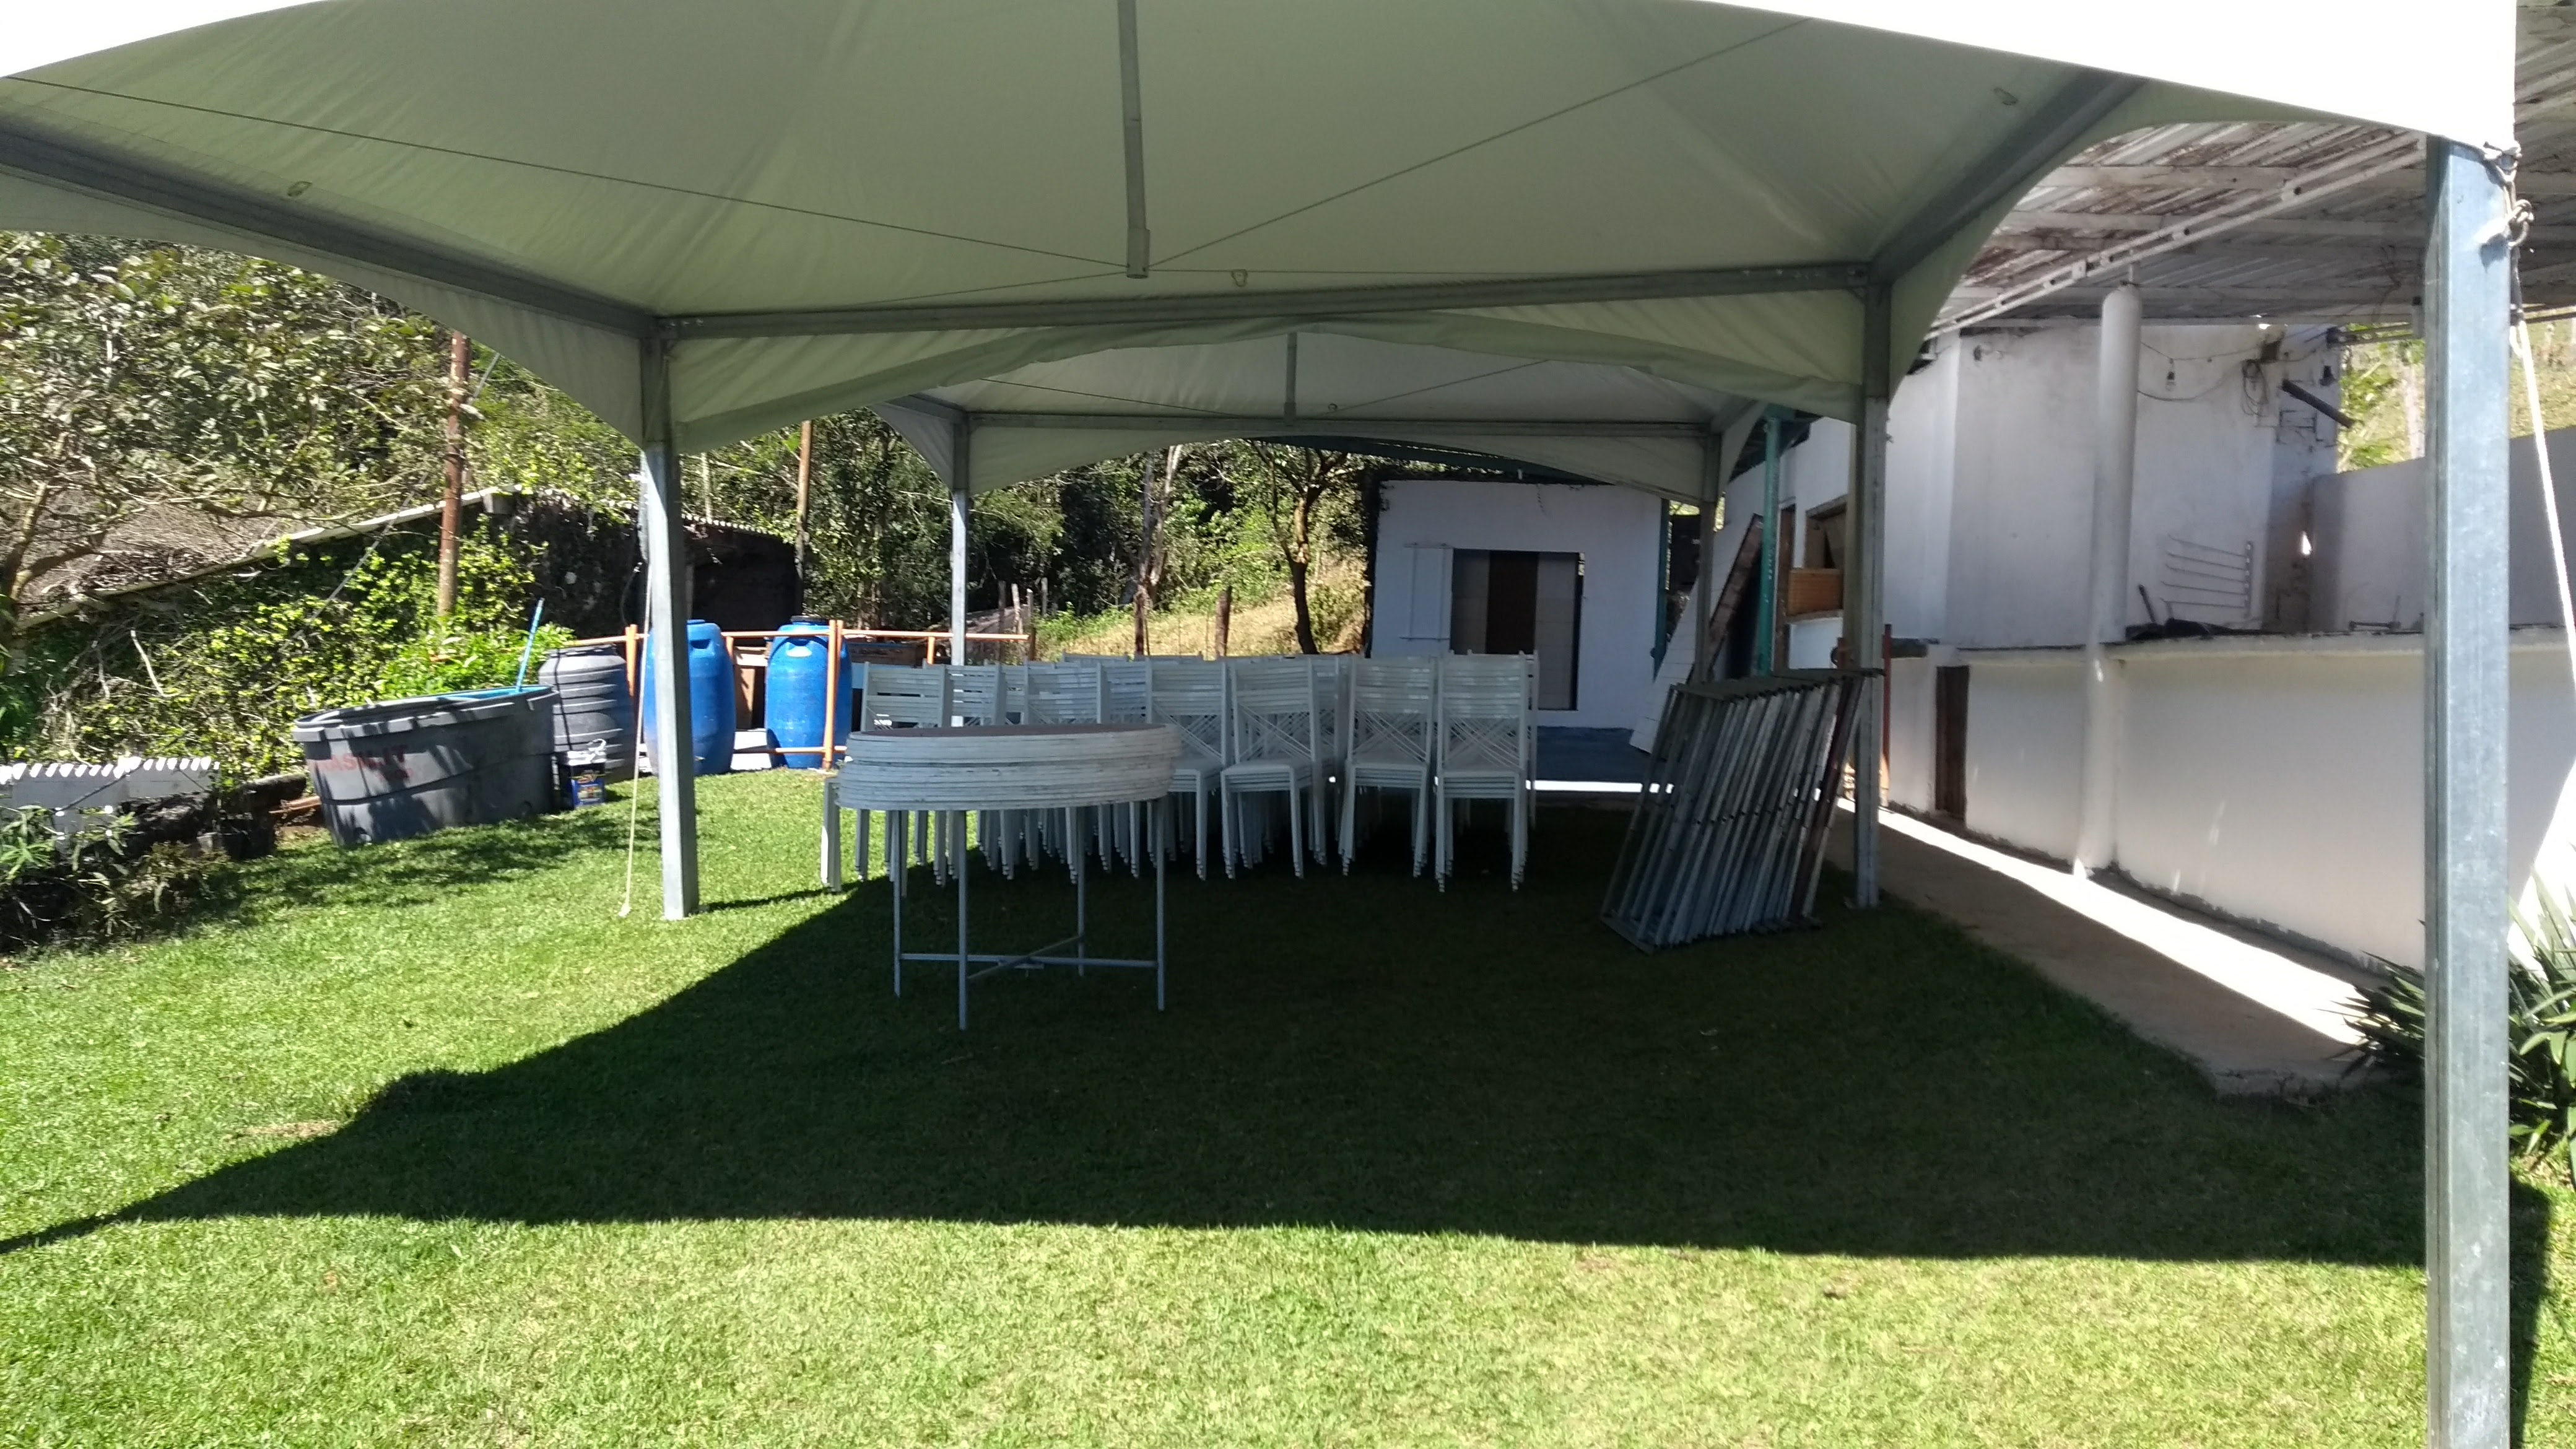 Vista interna tenda 5X10